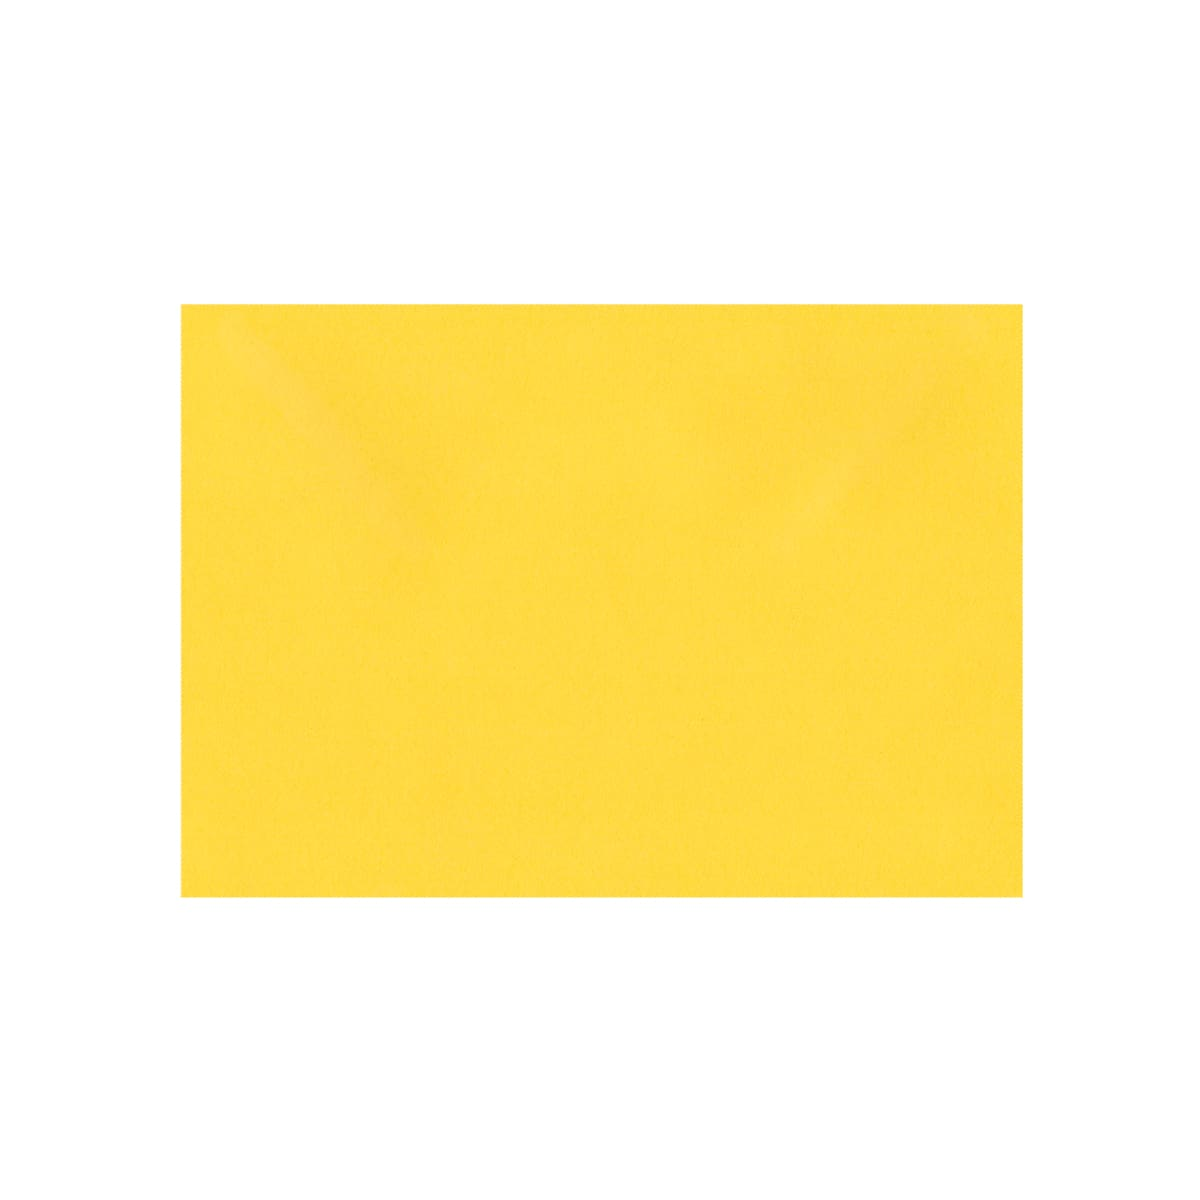 MID YELLOW 133 x 184 mm ENVELOPES 120GSM